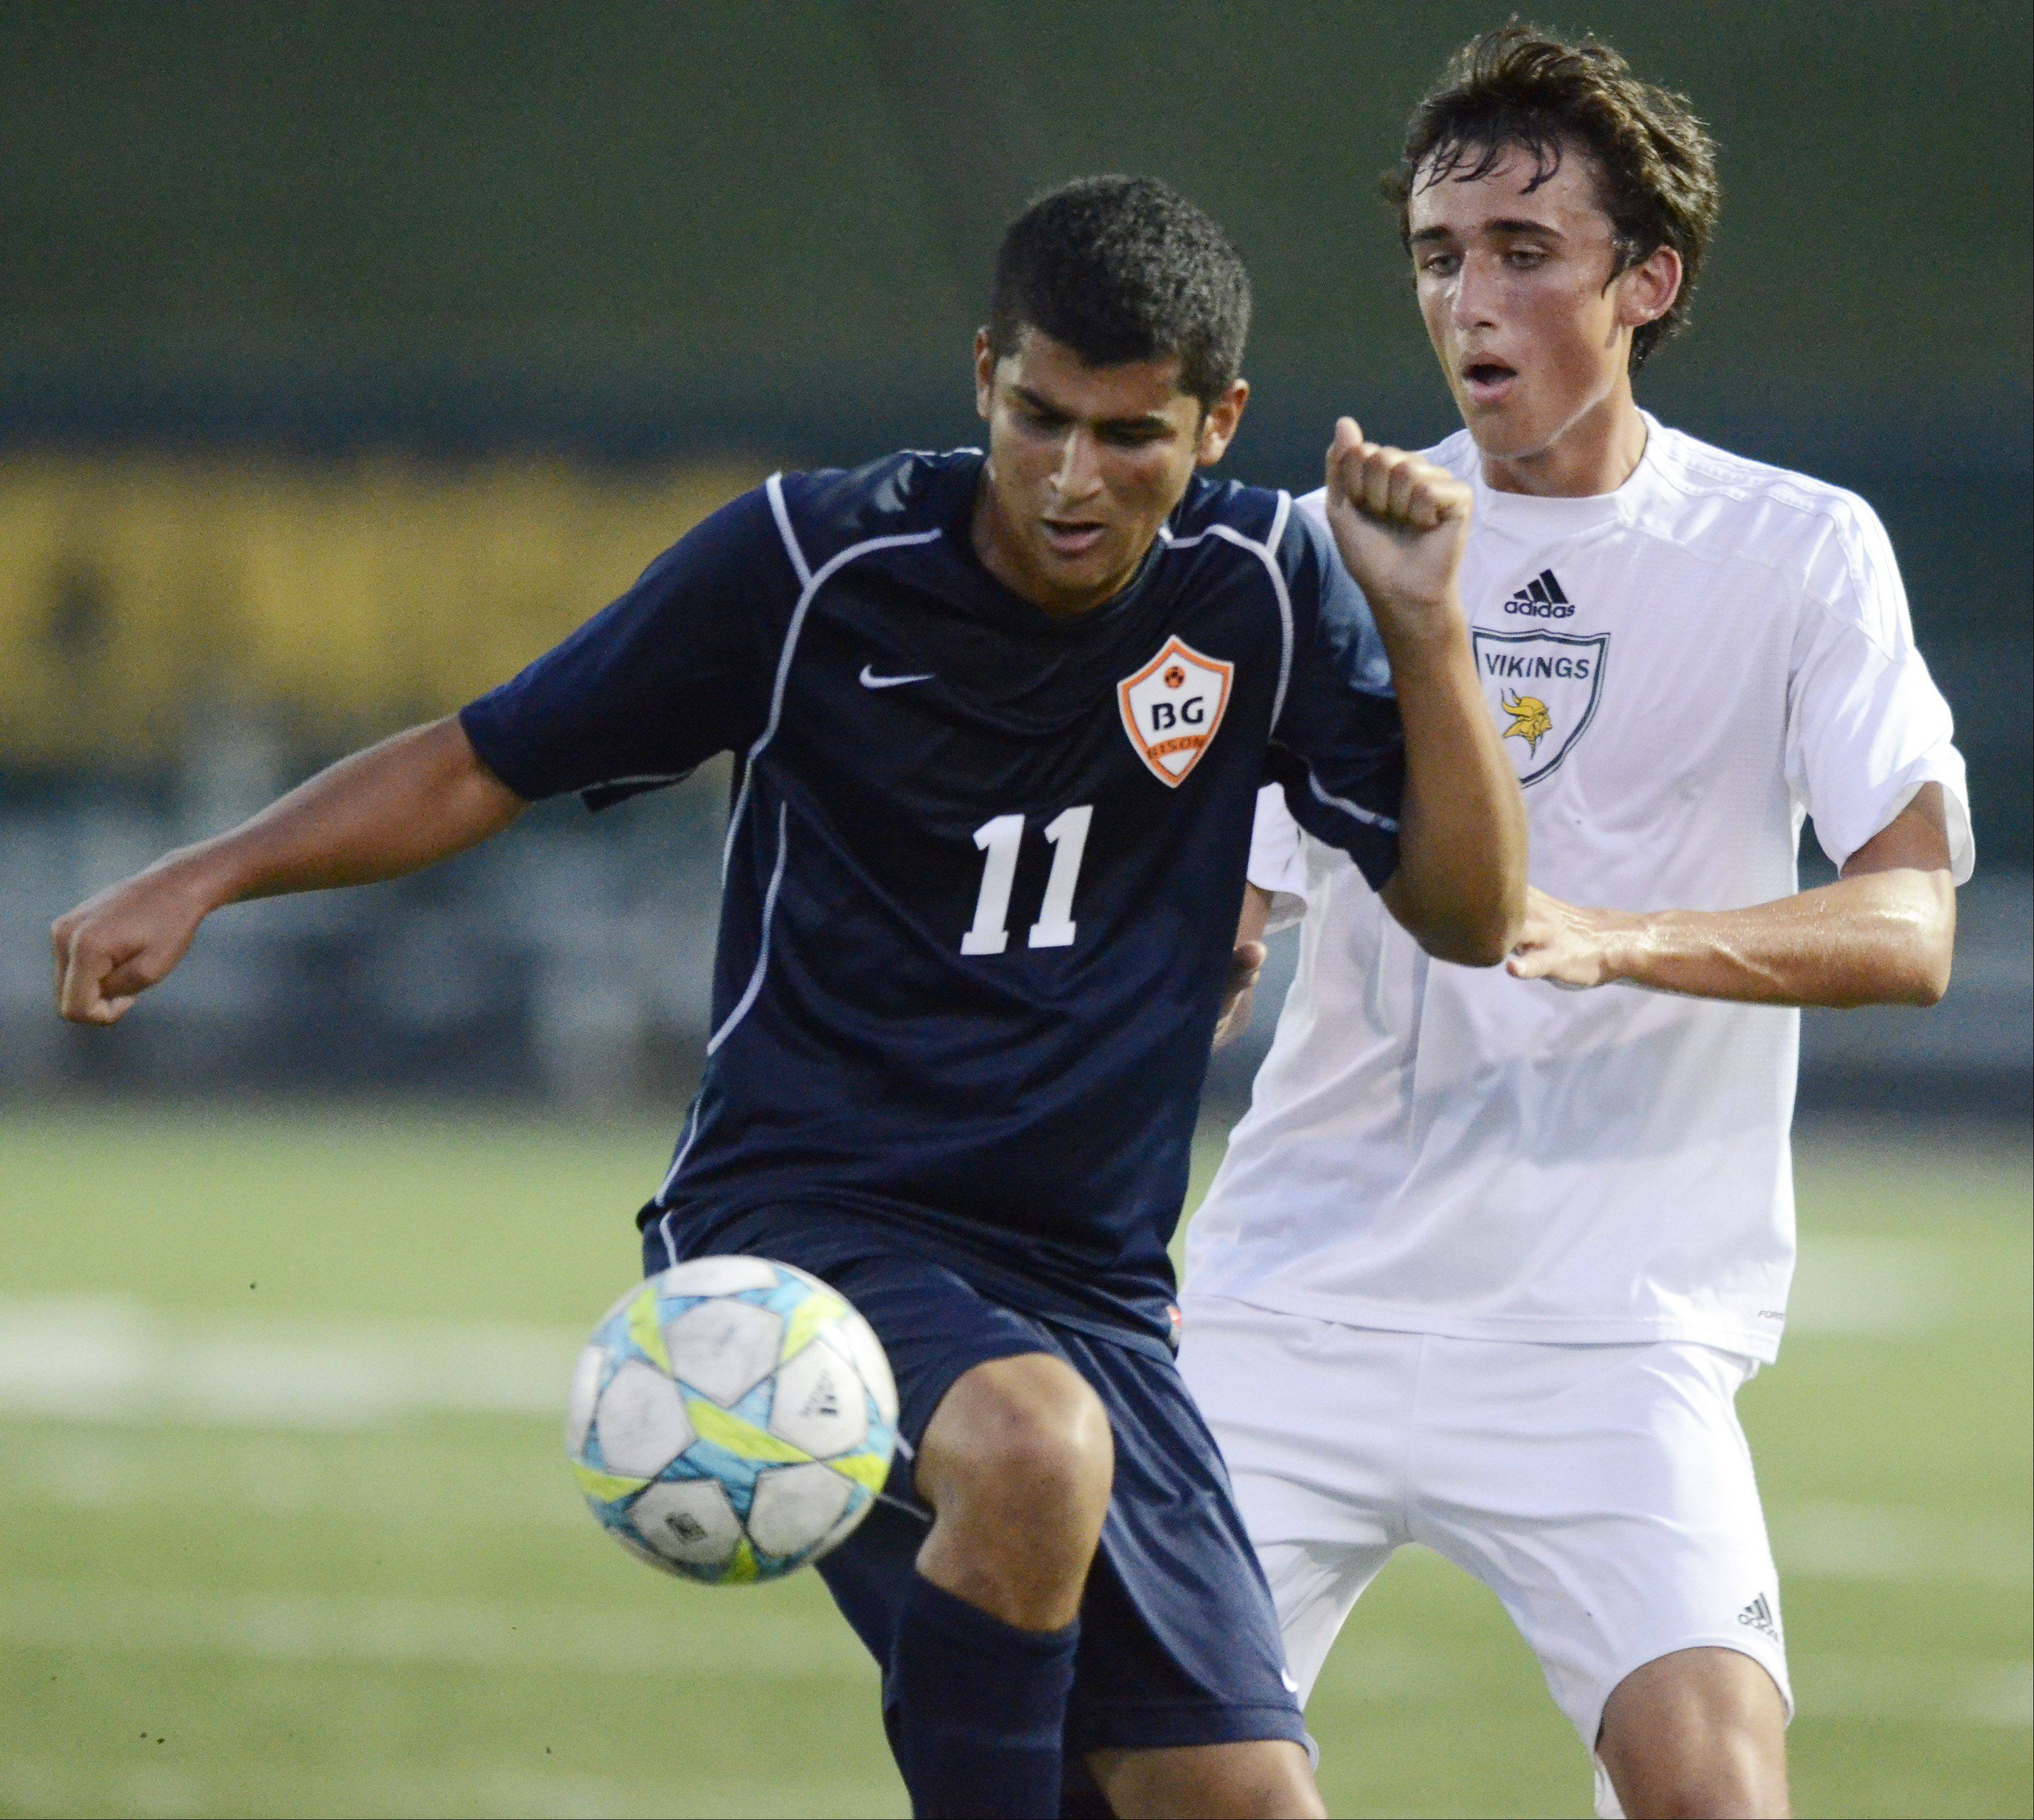 Buffalo Grove's Daniel Ramirez, left, tries to control the ball in front of Fremd's Nate Hellwarth during Tuesday's game.